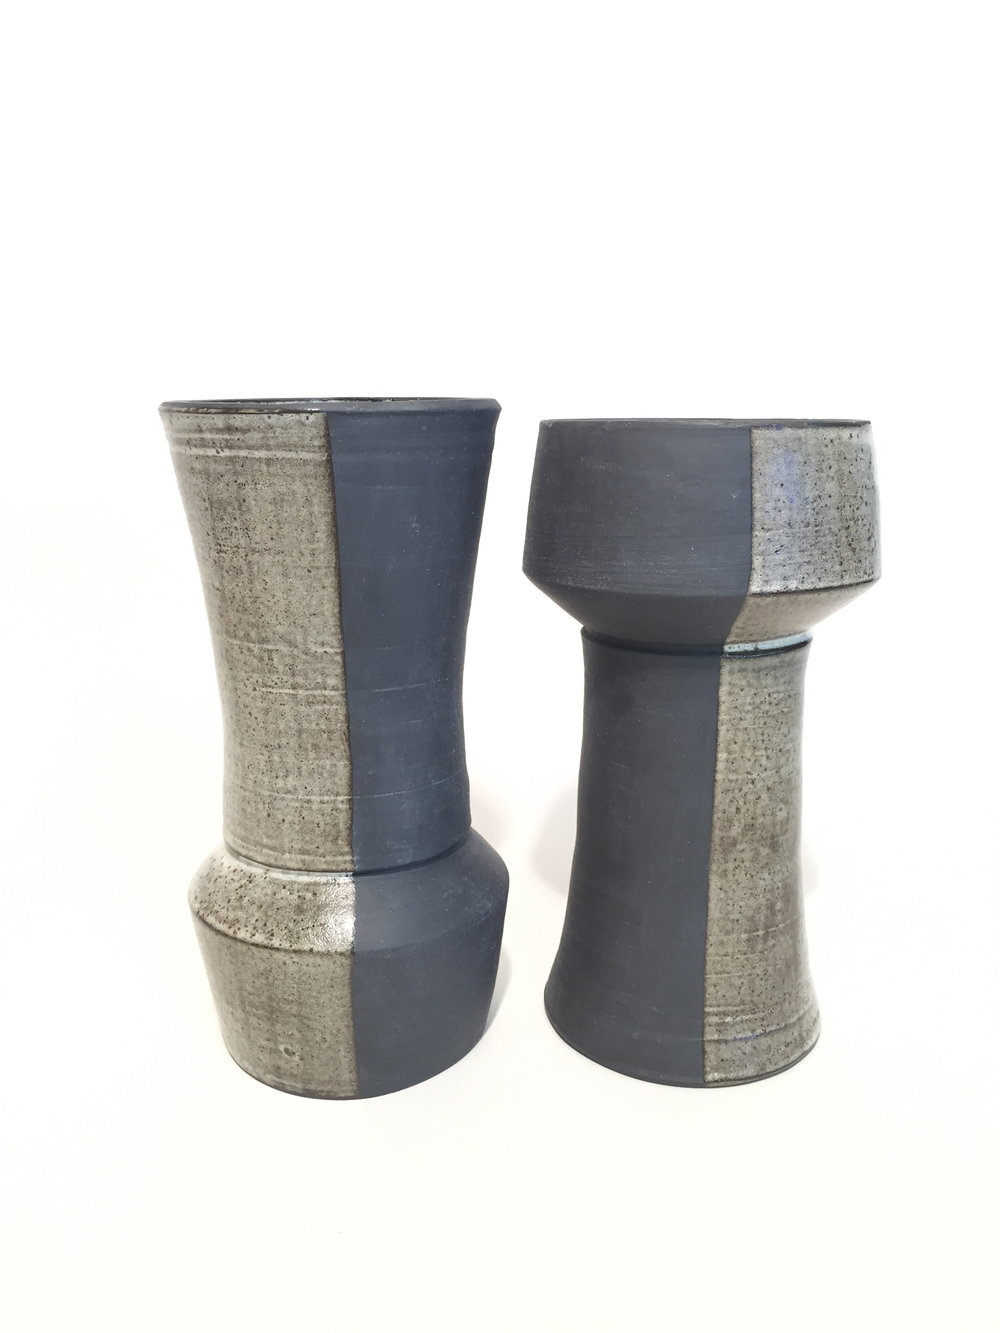 Reversible Vases in Black Clay